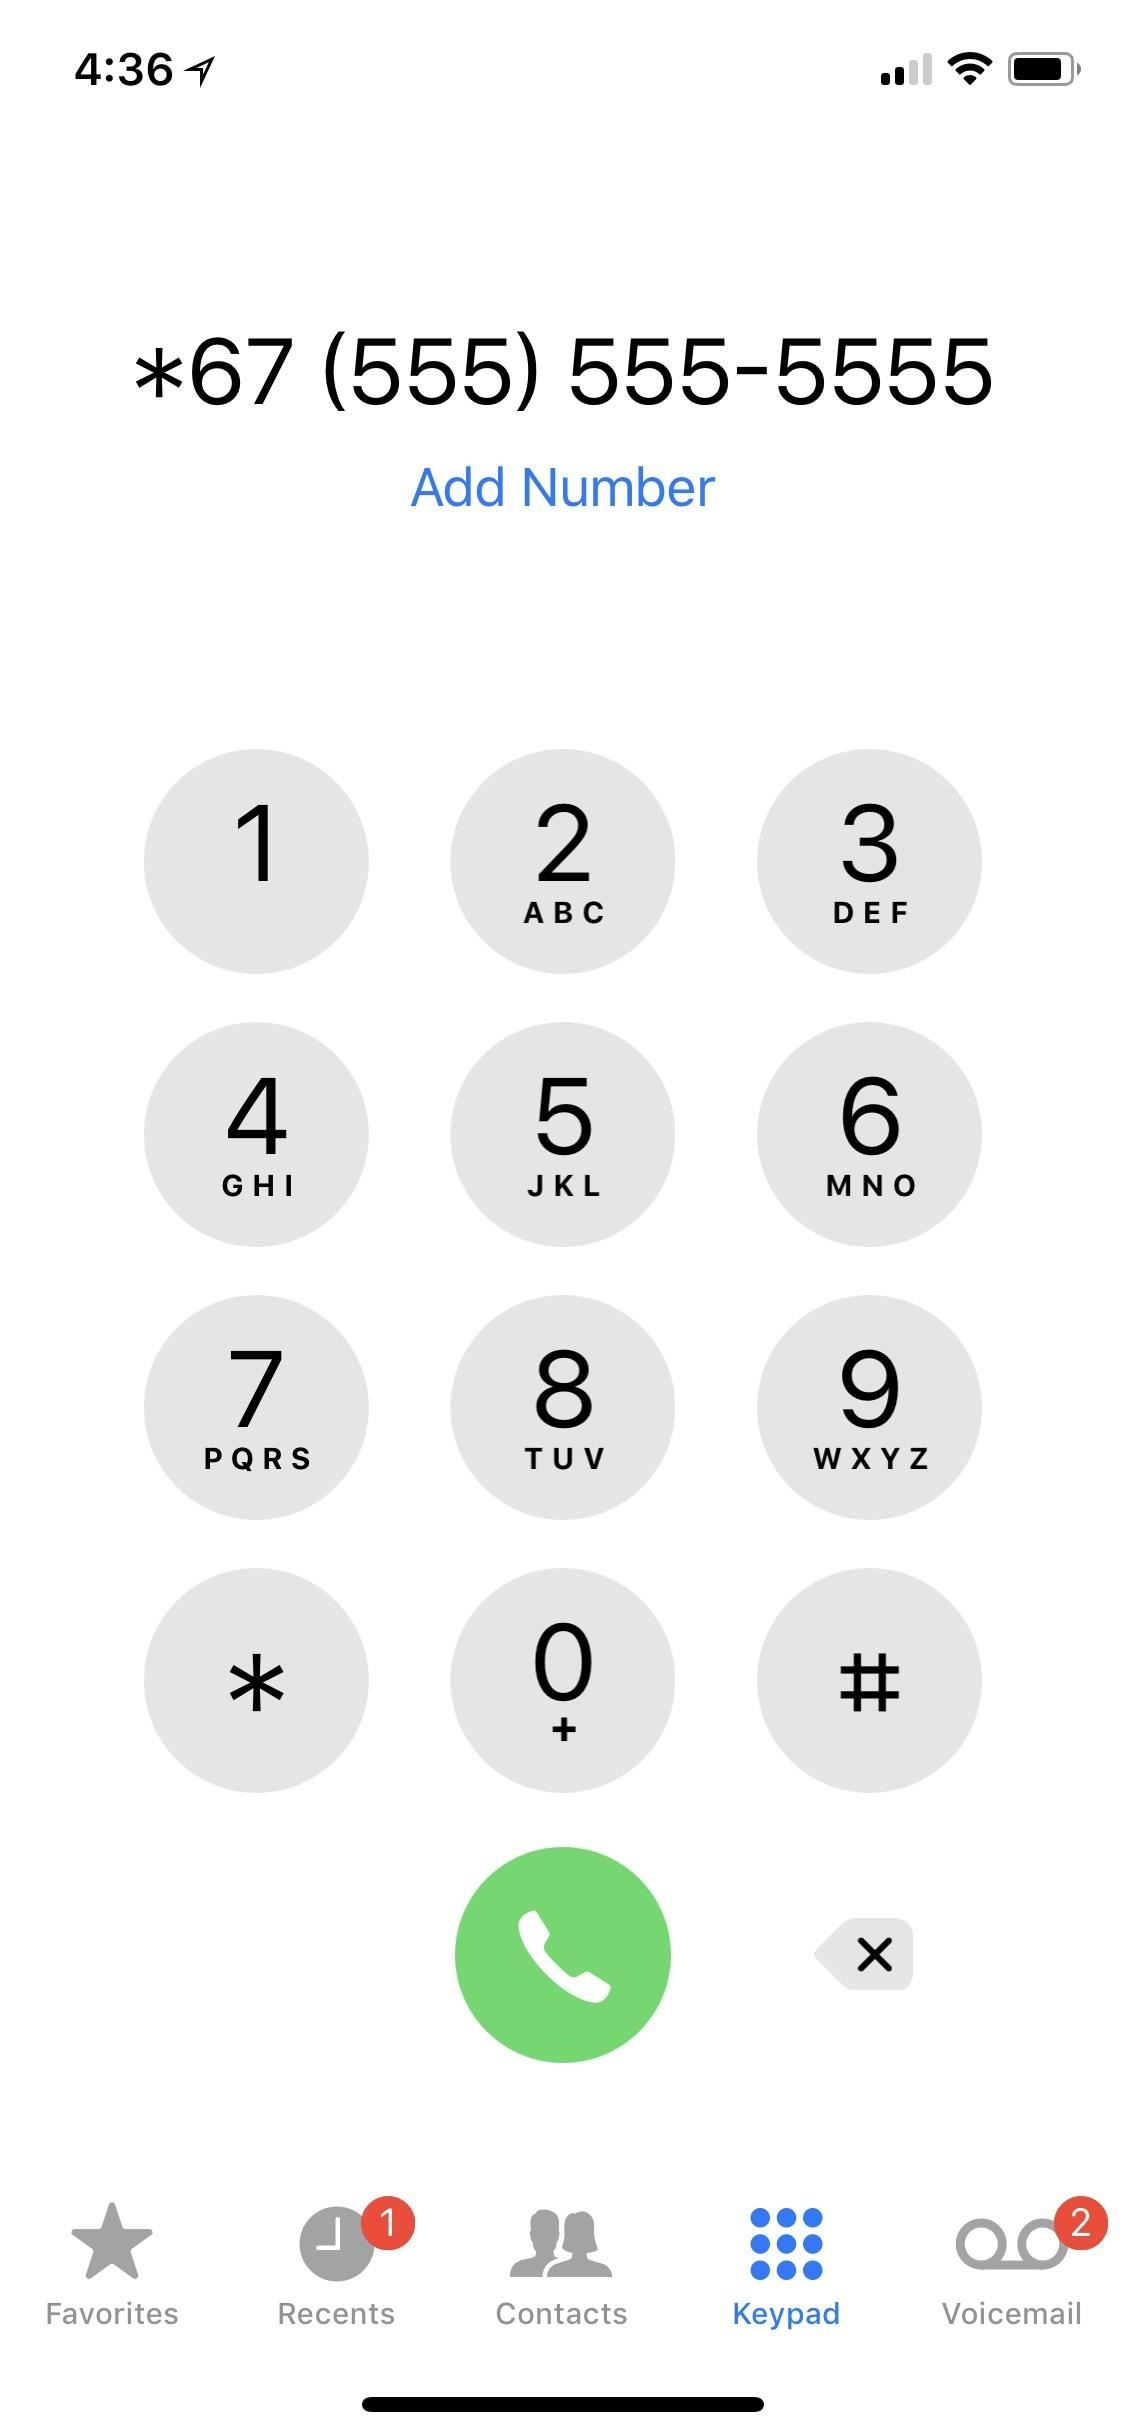 What does a restricted number mean